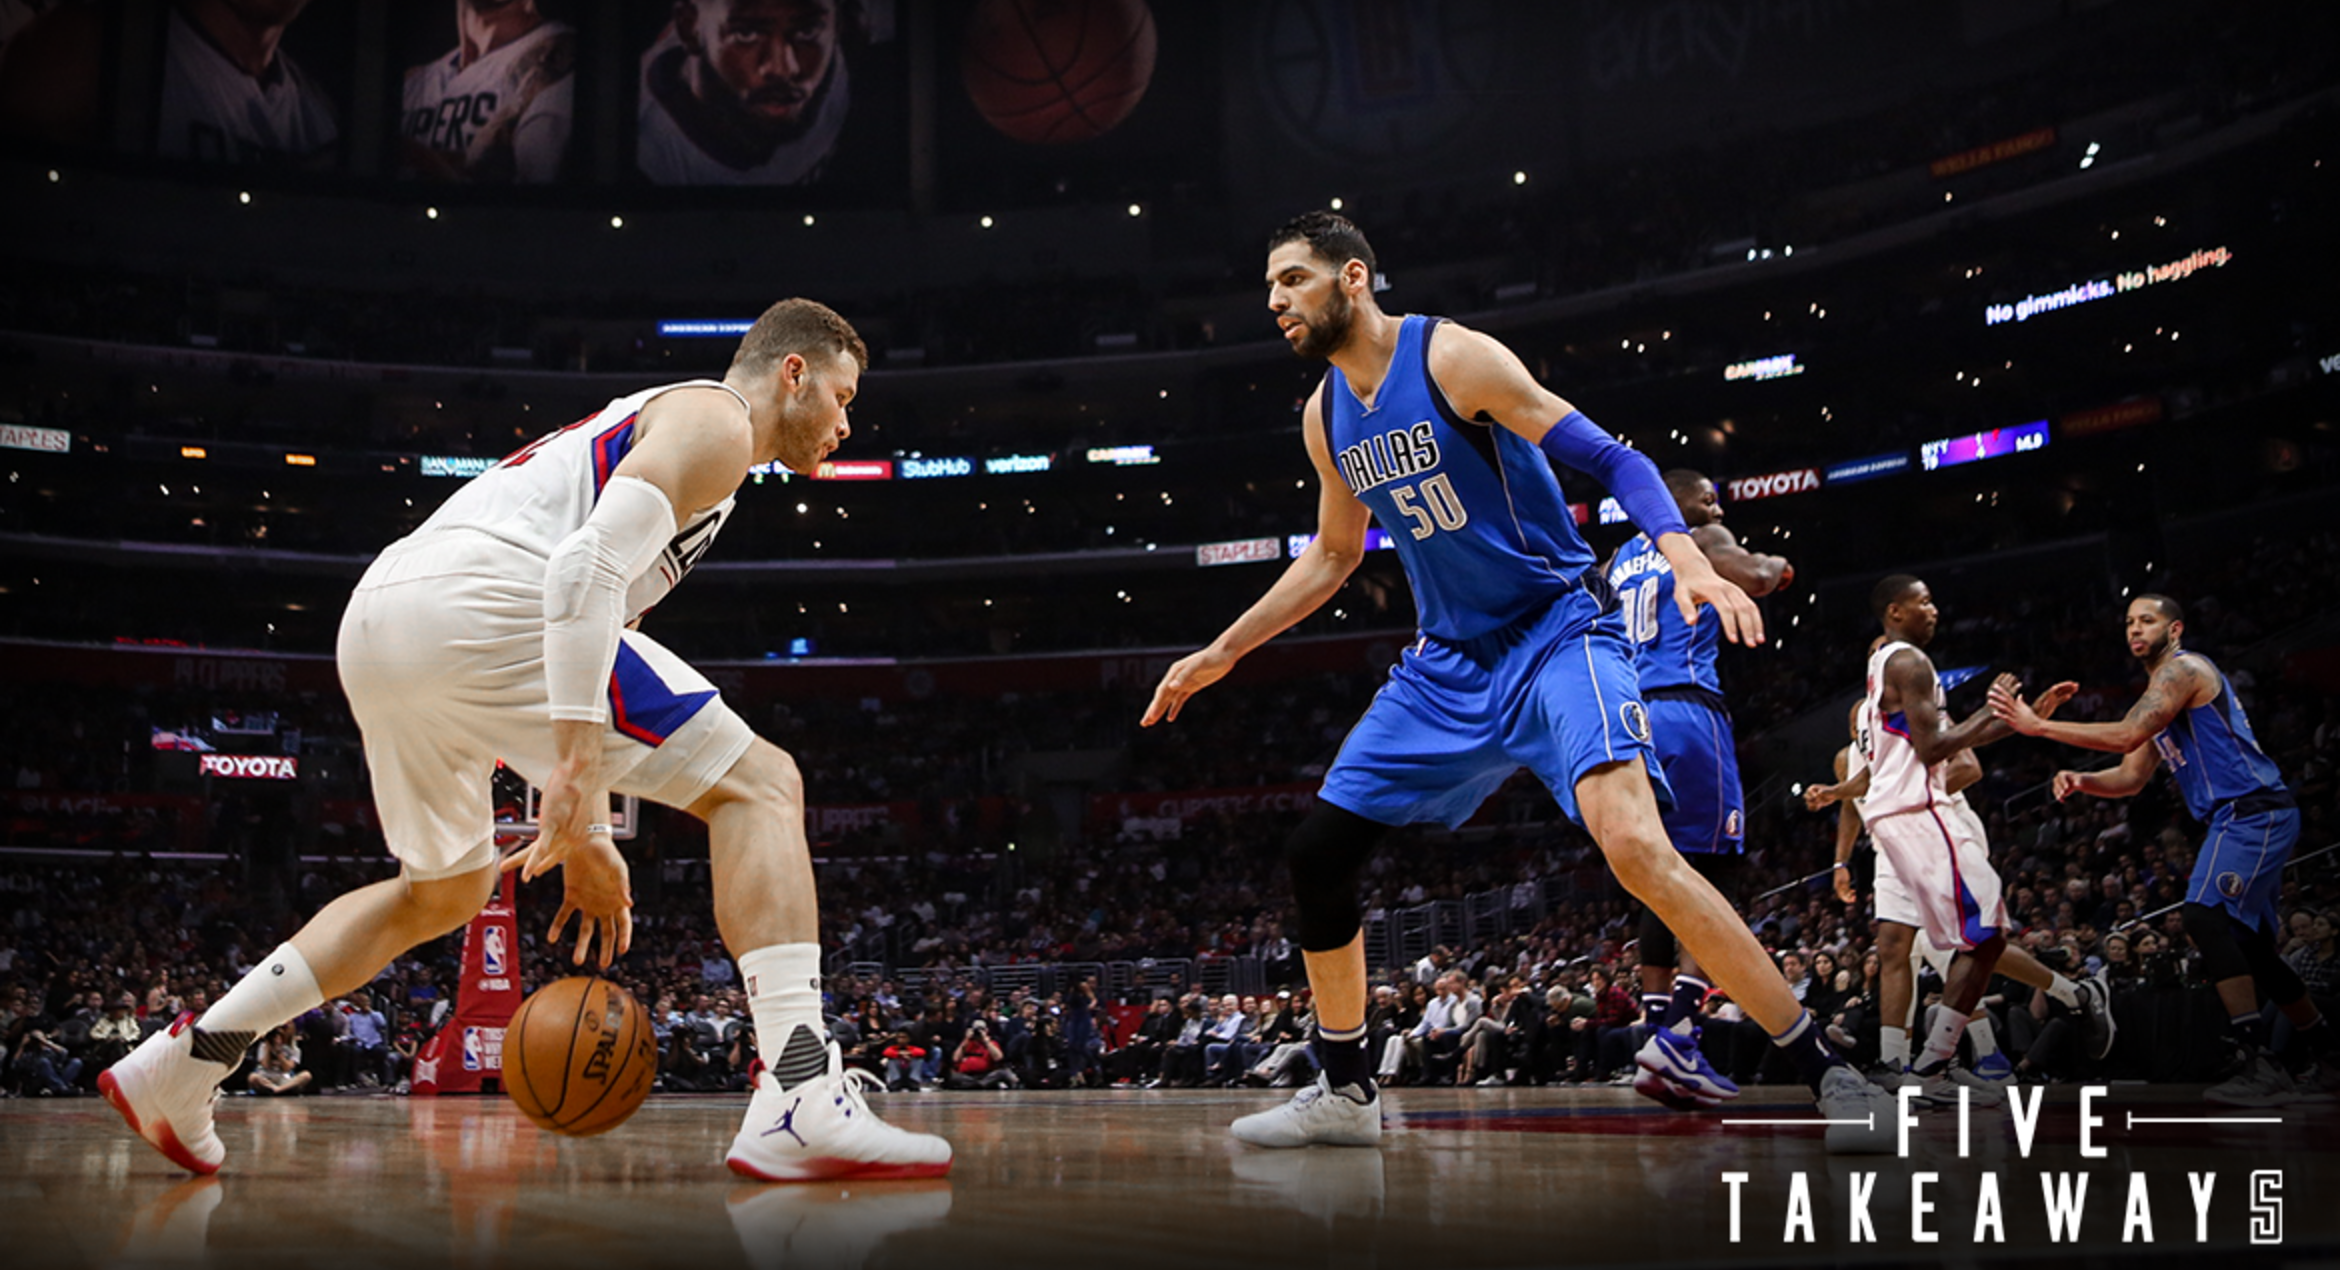 Five Takeaways: Griffin's 32 points allow Clippers to roll past Mavericks